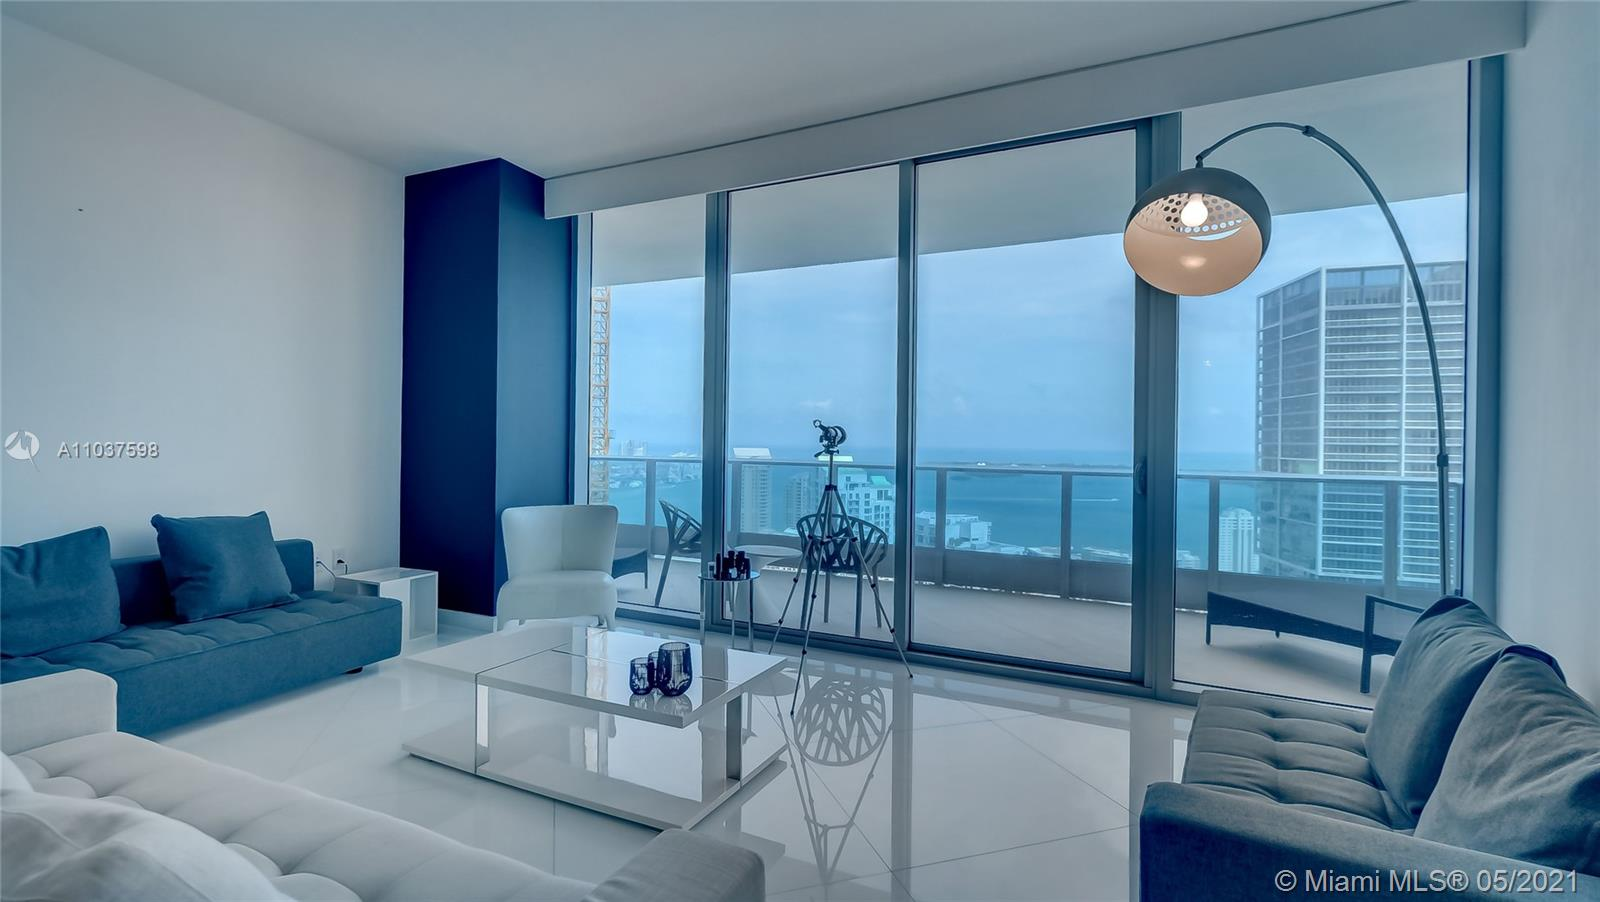 Epic Residences #5107 - 200 Biscayne Blvd way #5107, Miami, FL 33131